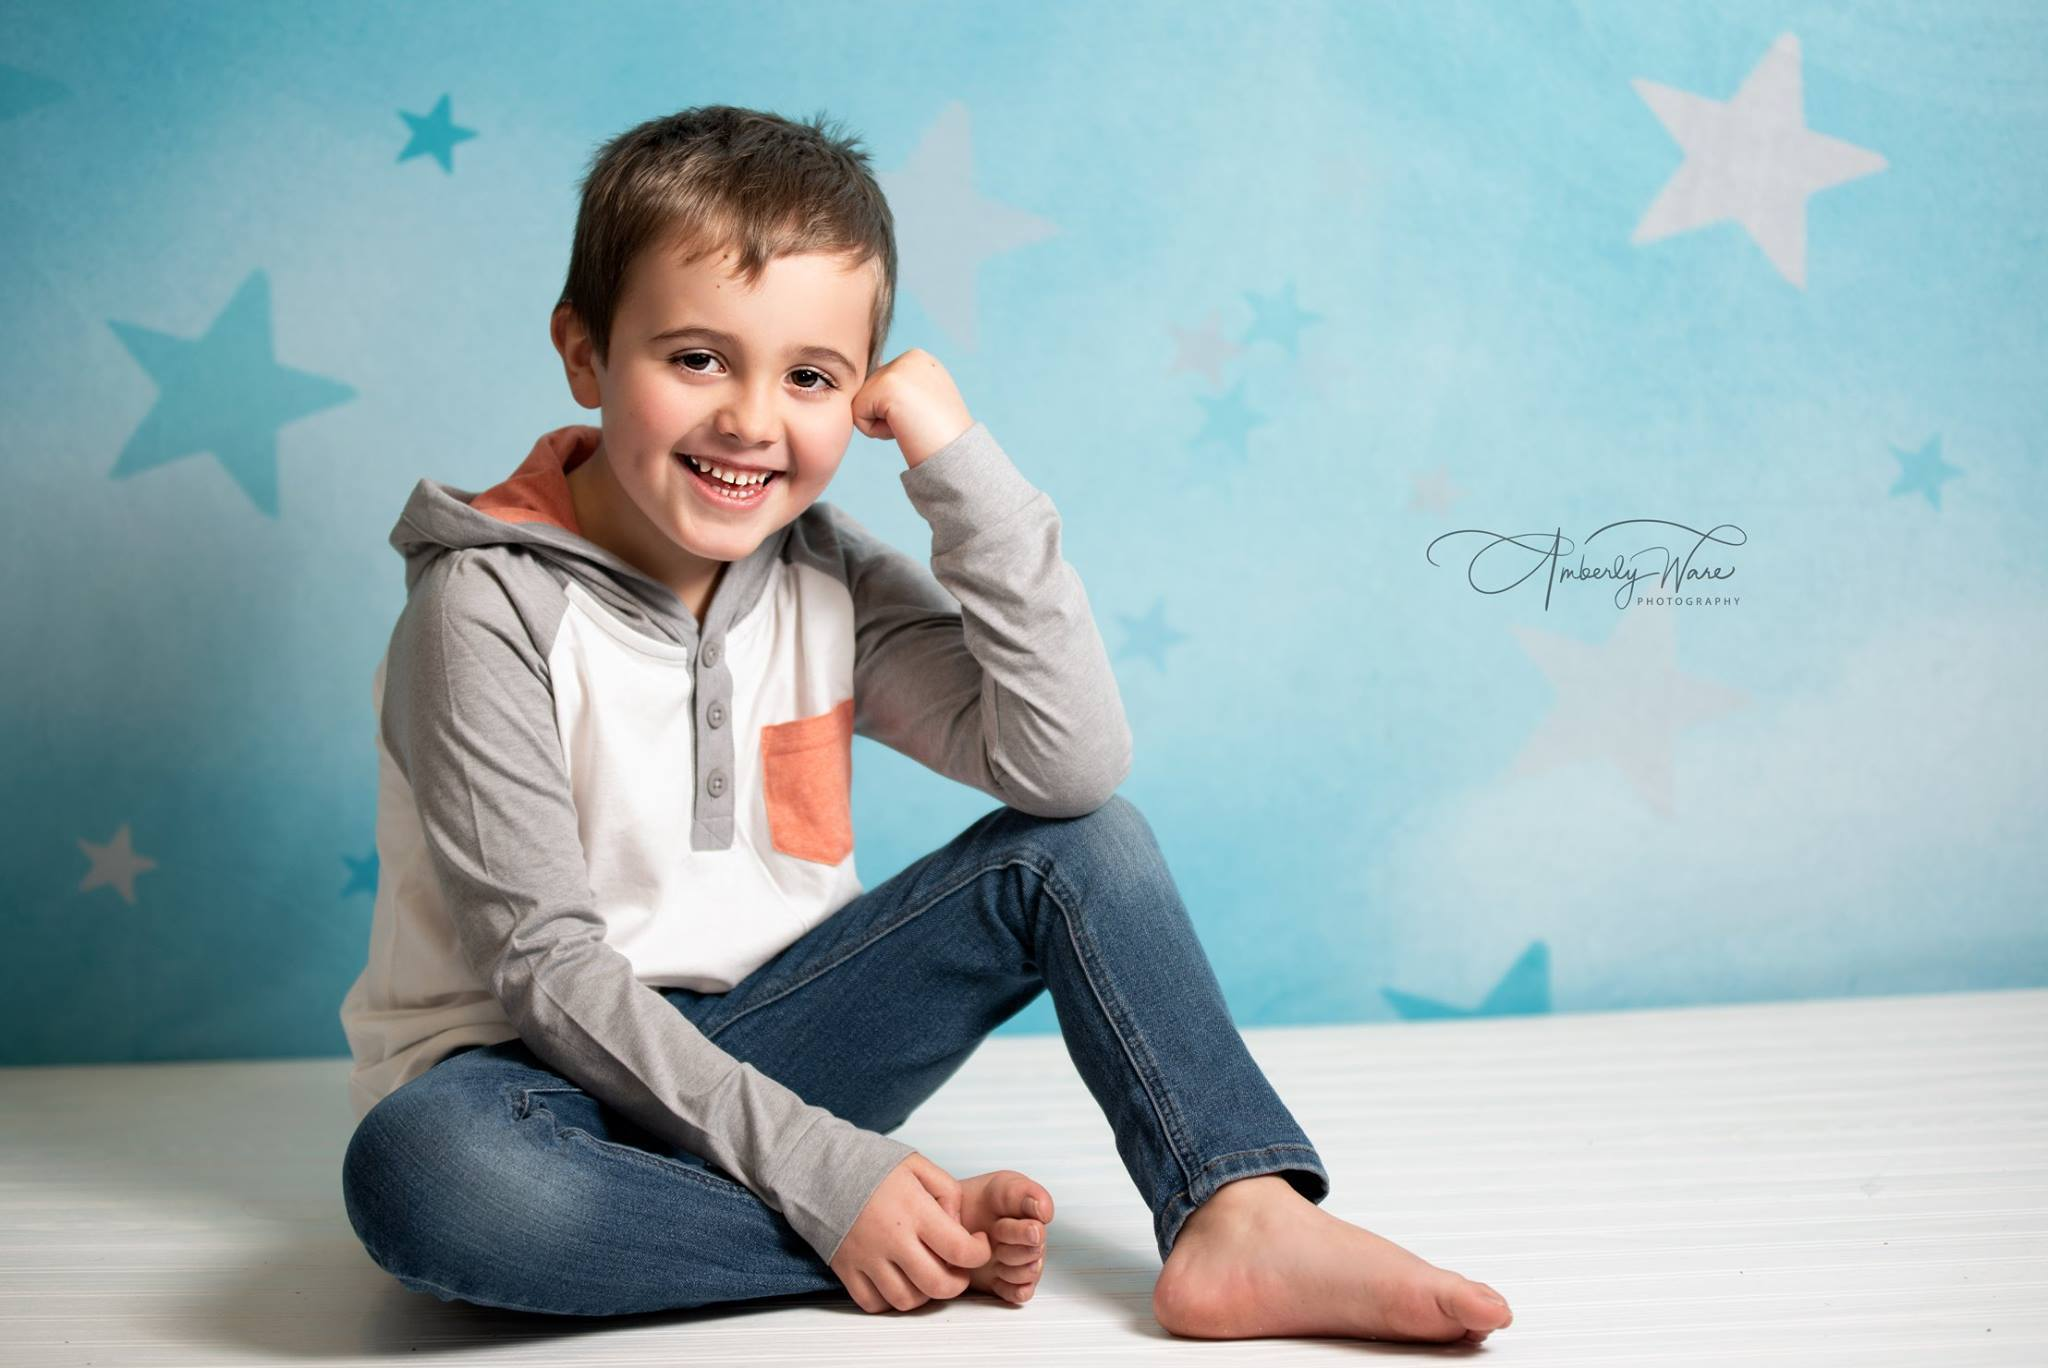 Load image into Gallery viewer, Kate Soft Skies Blue Stars Backdrop for Photography Designed by Mini MakeBelieve